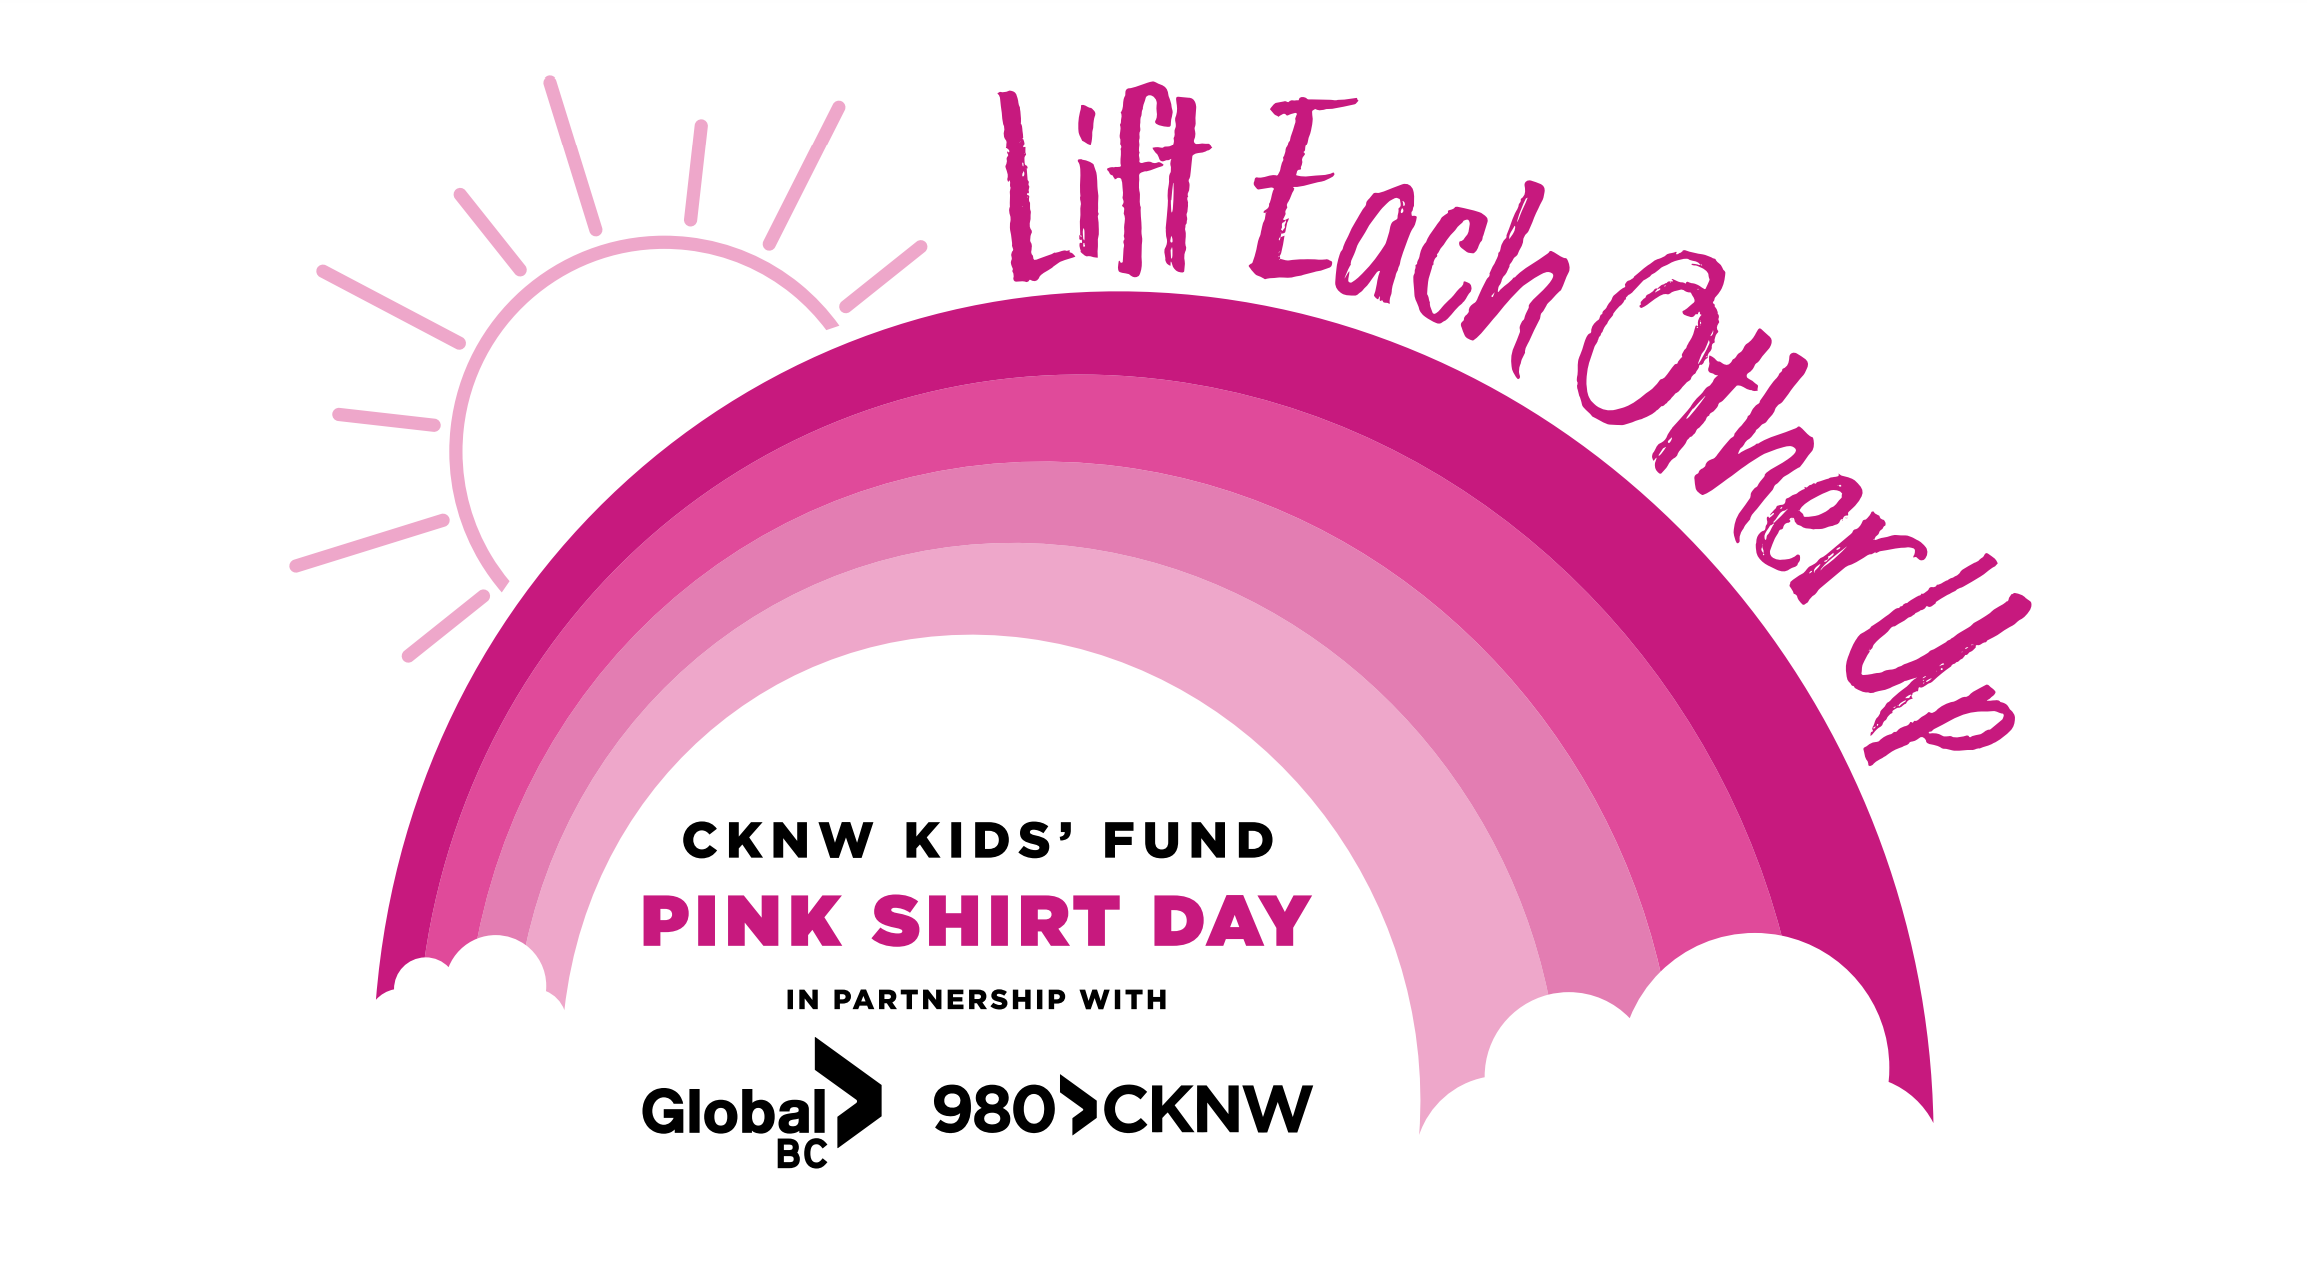 Lift Each Other Up - CKNW KIDS' FUND PINK SHIRT DAY